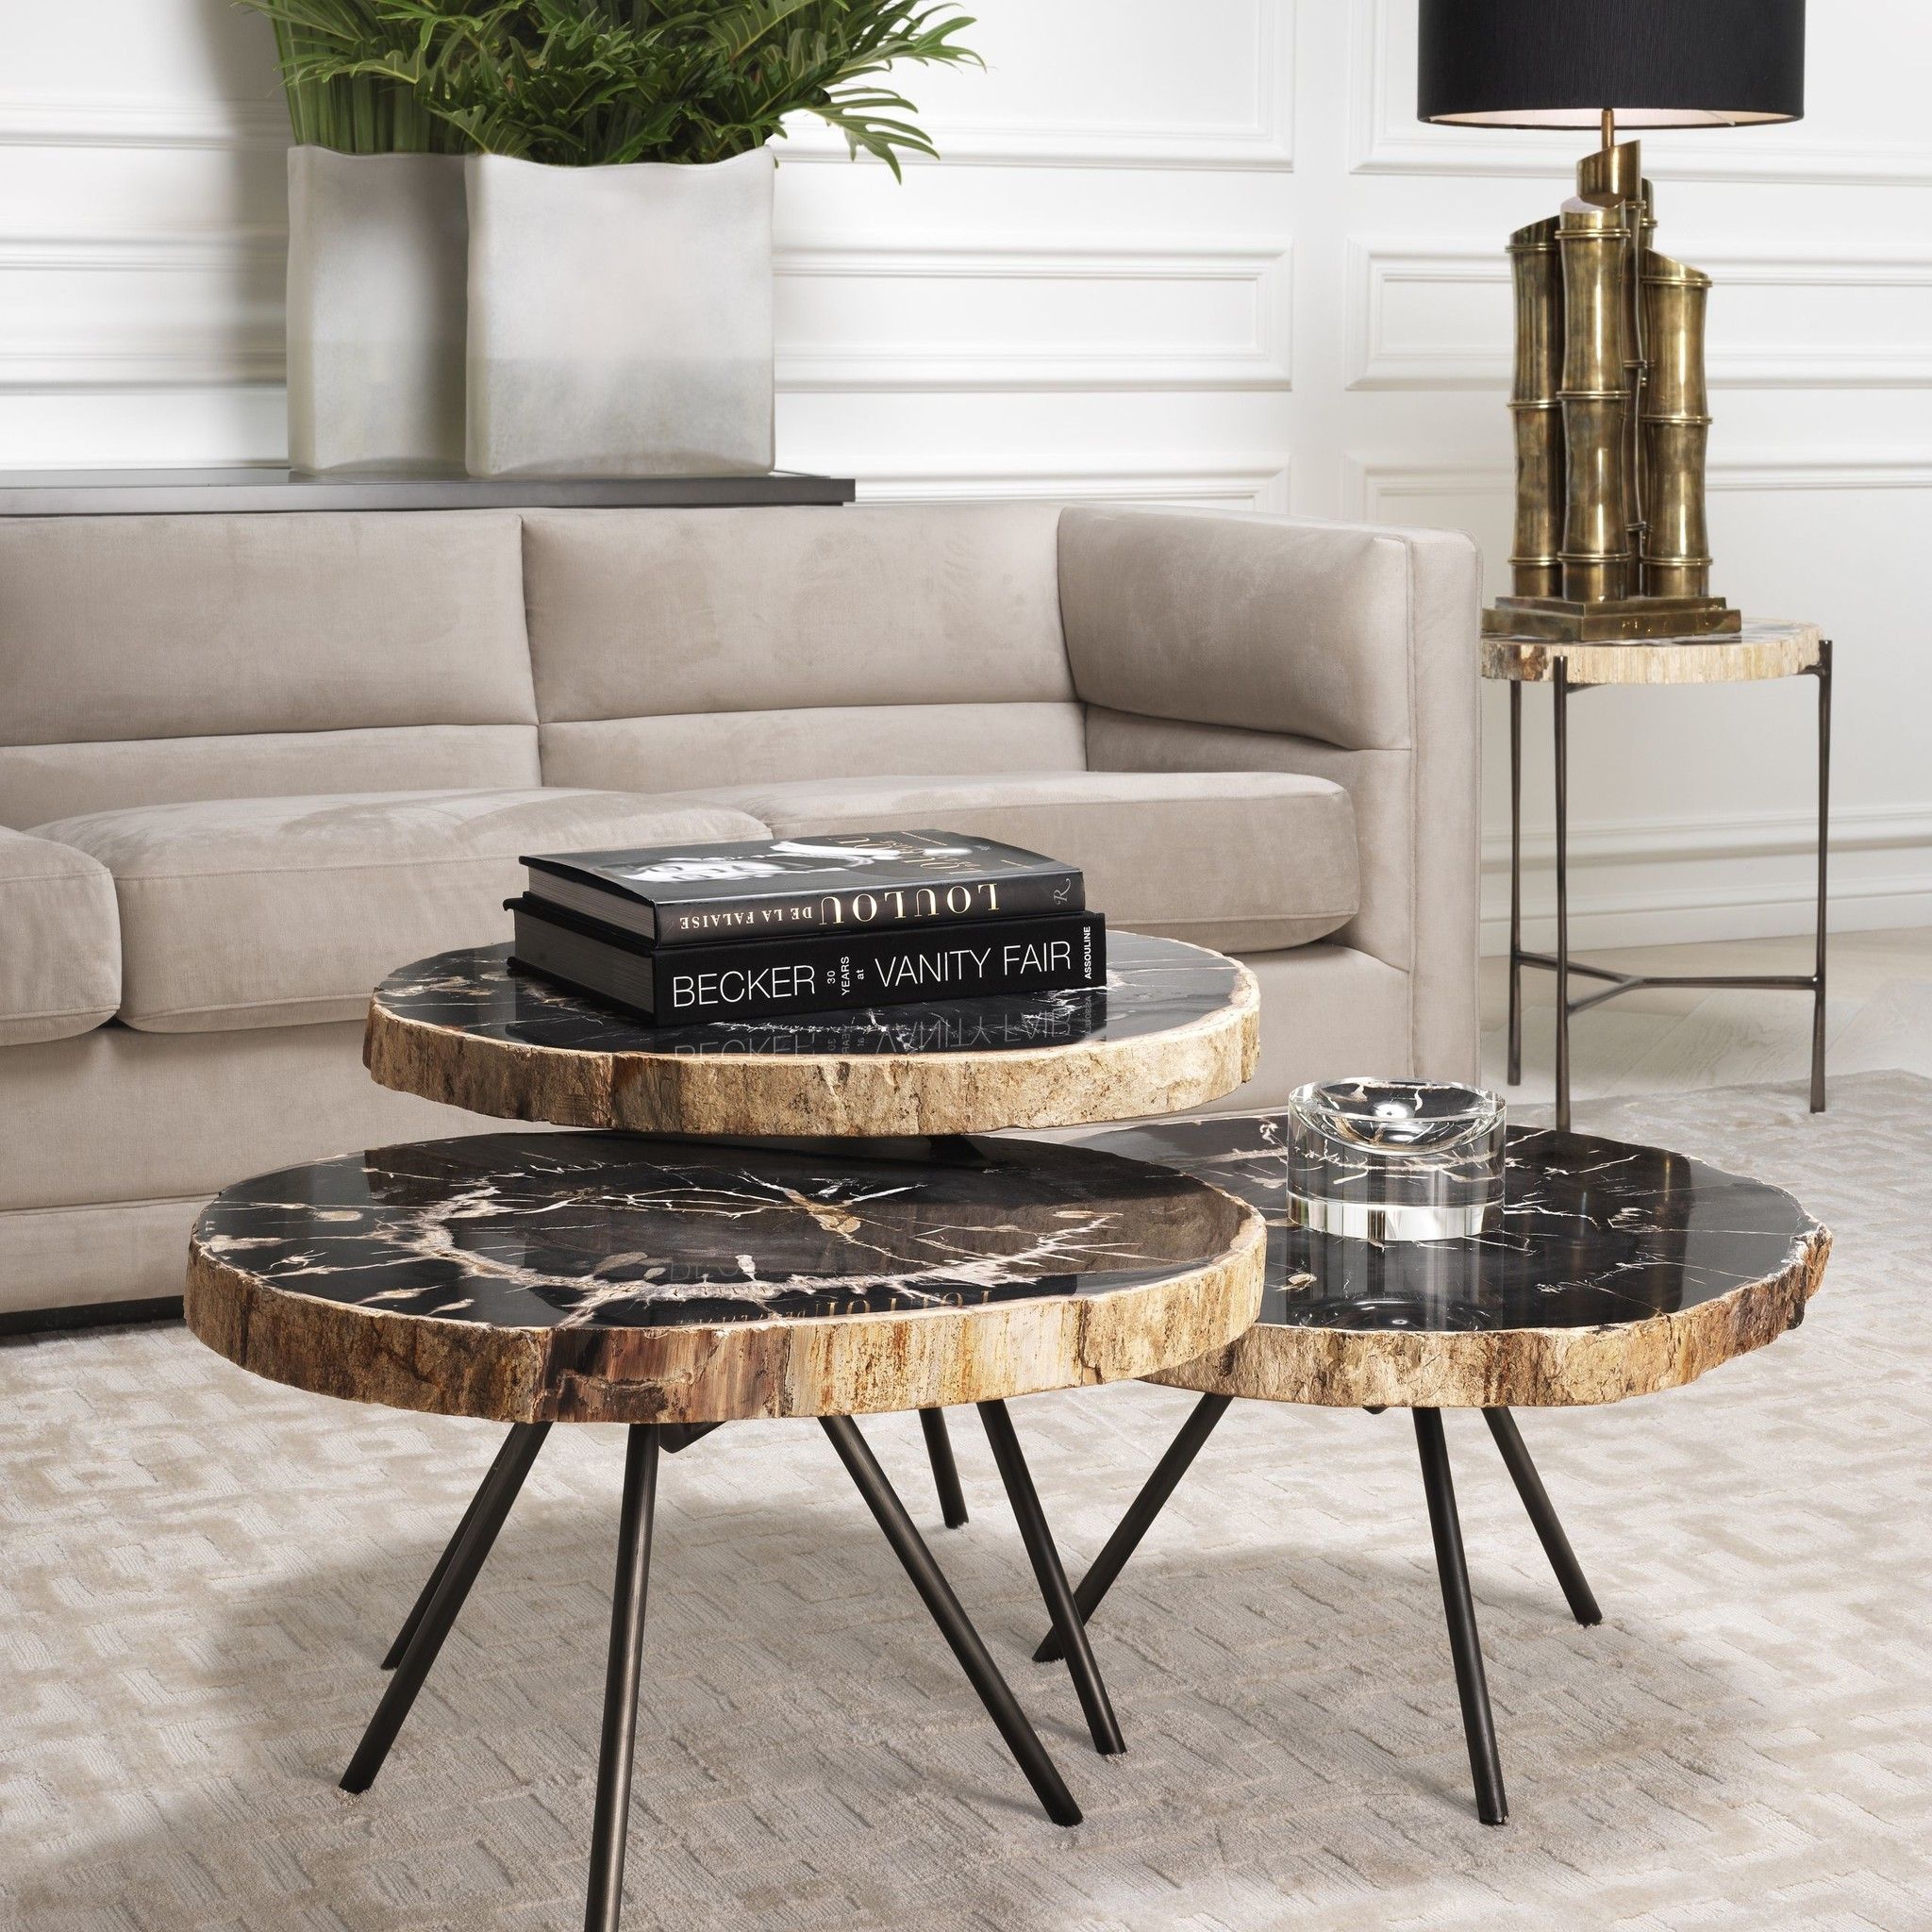 Salontafel Design On Stock.De Soto Dark Set Of 3 Coffee Tables Wilhelmina Designs